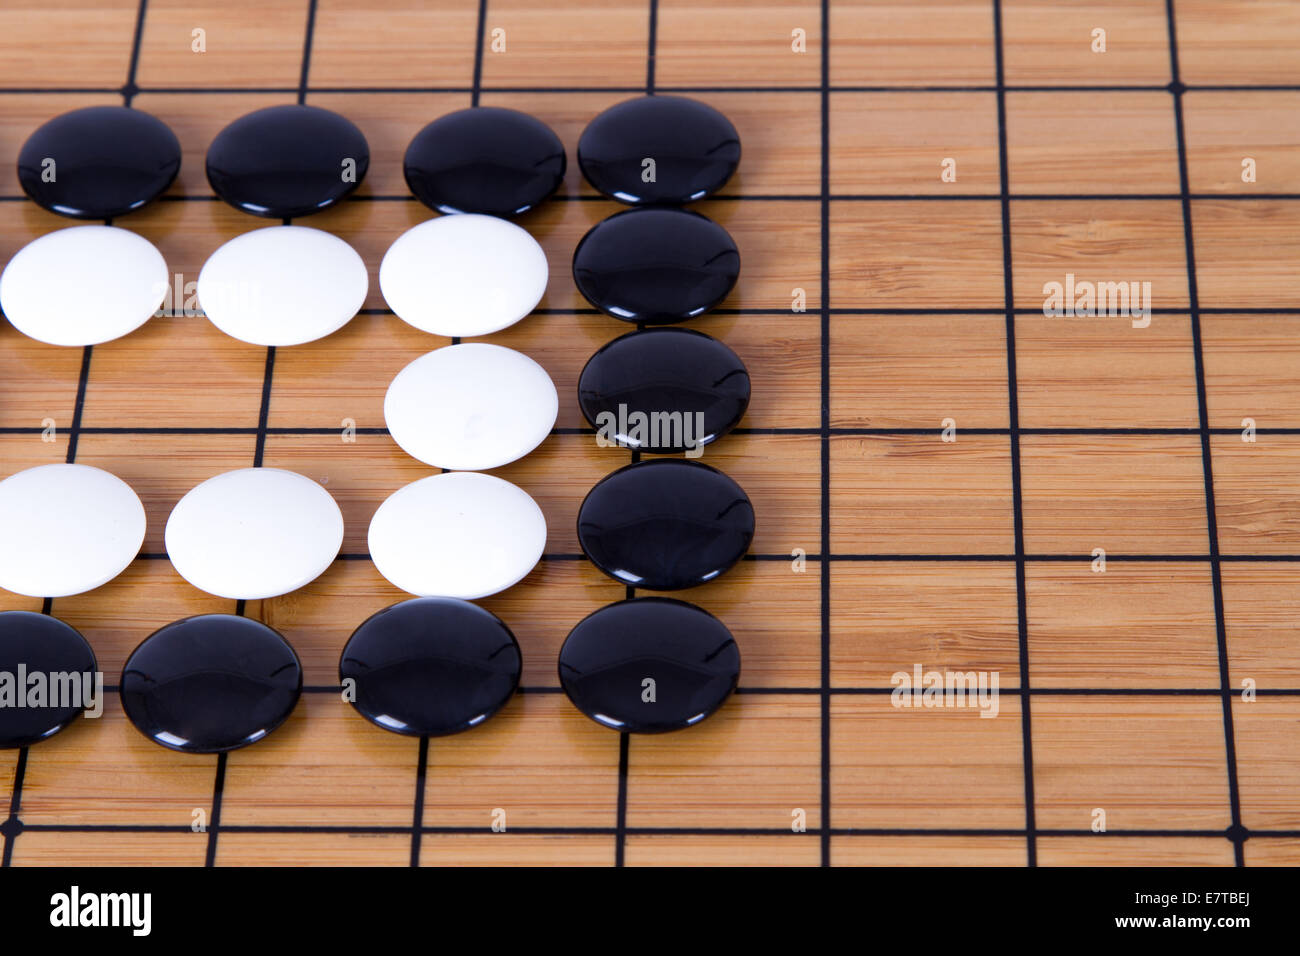 Close Up View Of Black And White Stone Pieces On Chinese Go Game Board